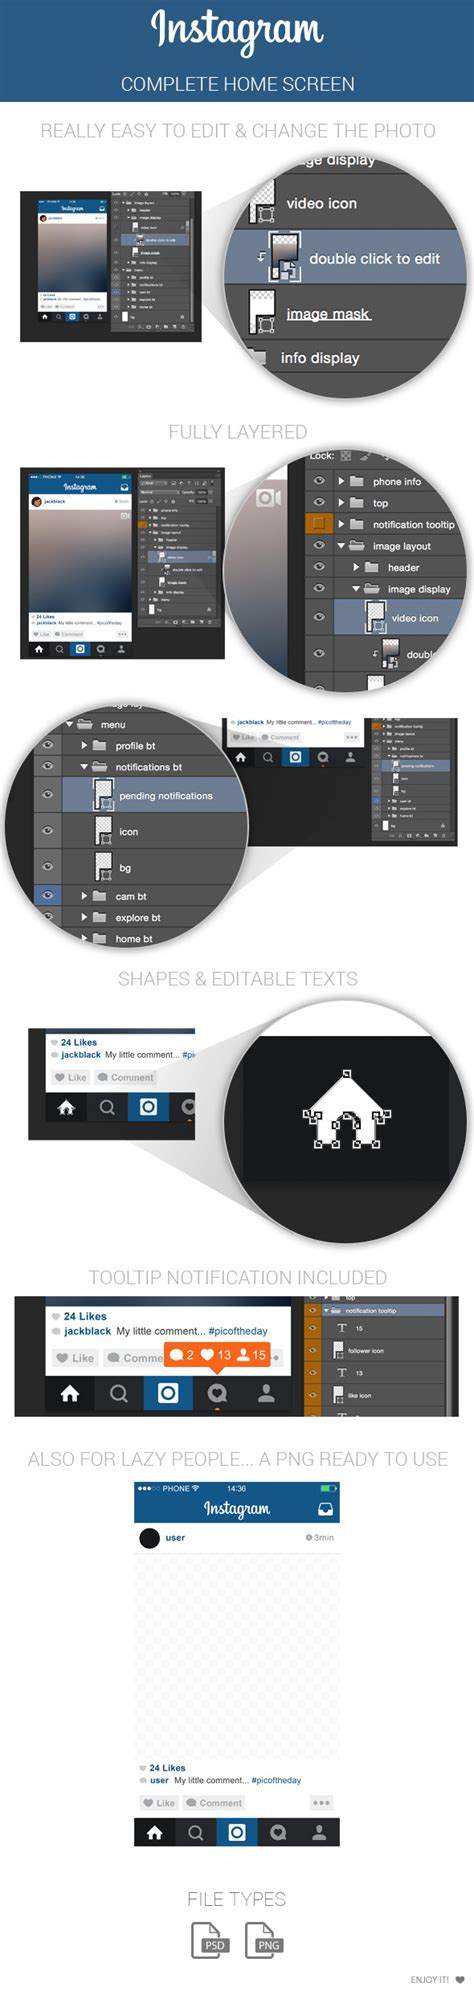 instagram screen layout 14 ig icon psd images red circle logo starts with m